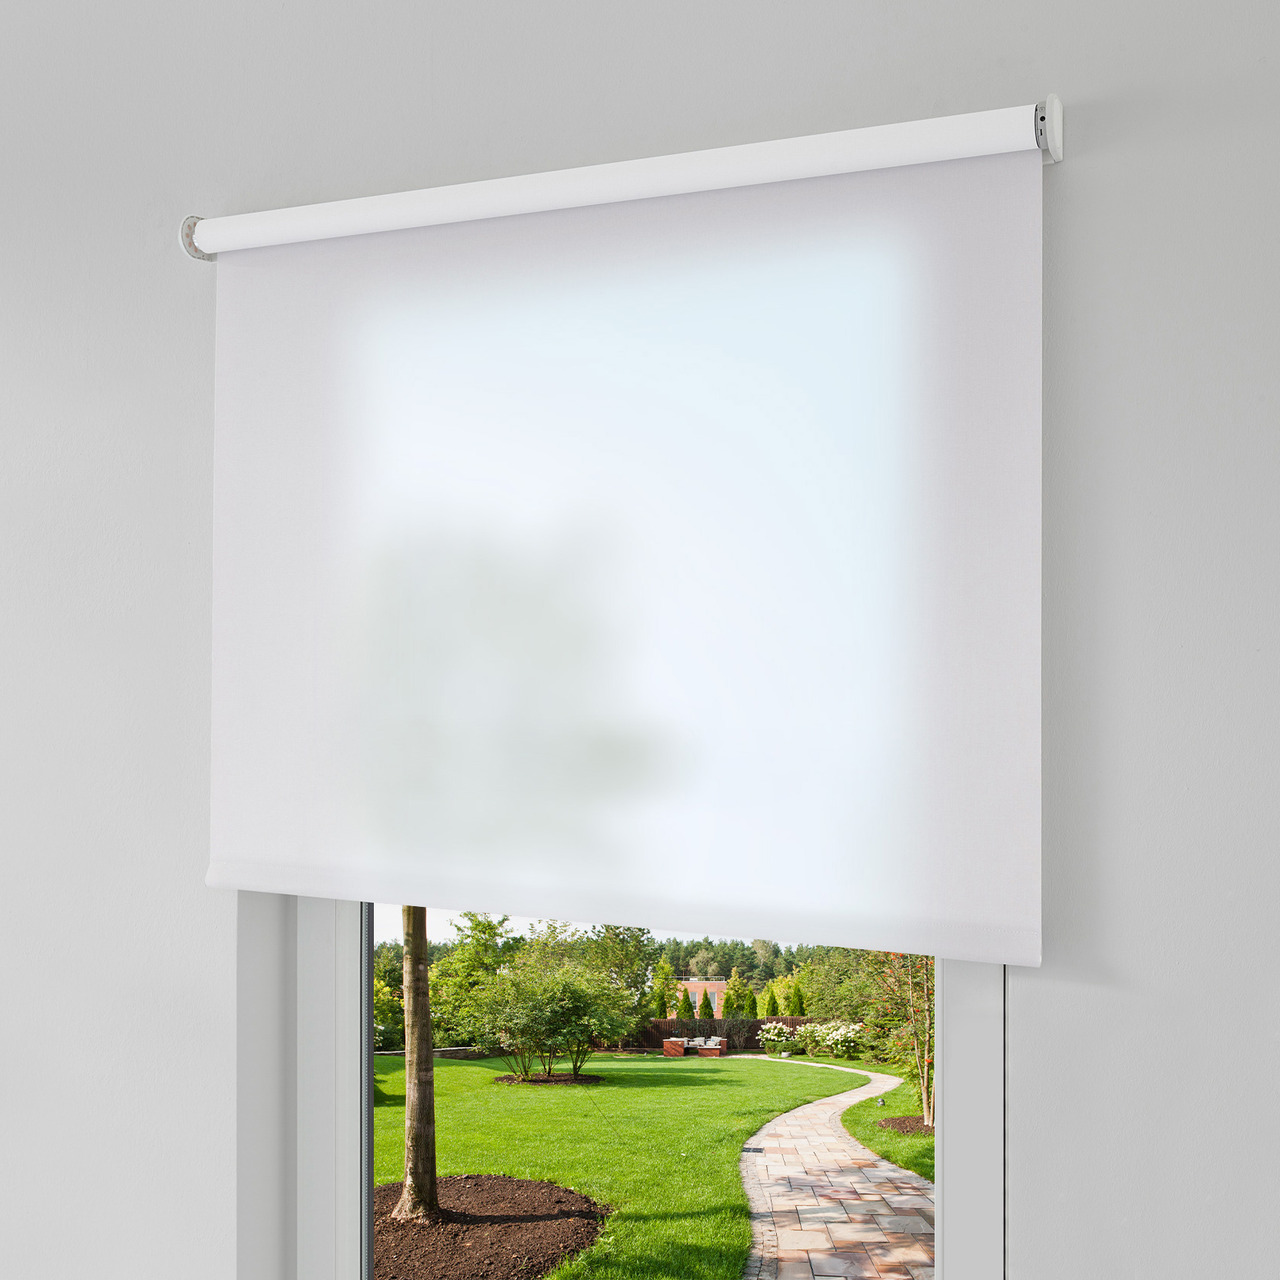 Erfal Smartcontrol Rollo by Homematic IP- 120 x 230 cm (B x H)- halbtransparent tageslicht weiss